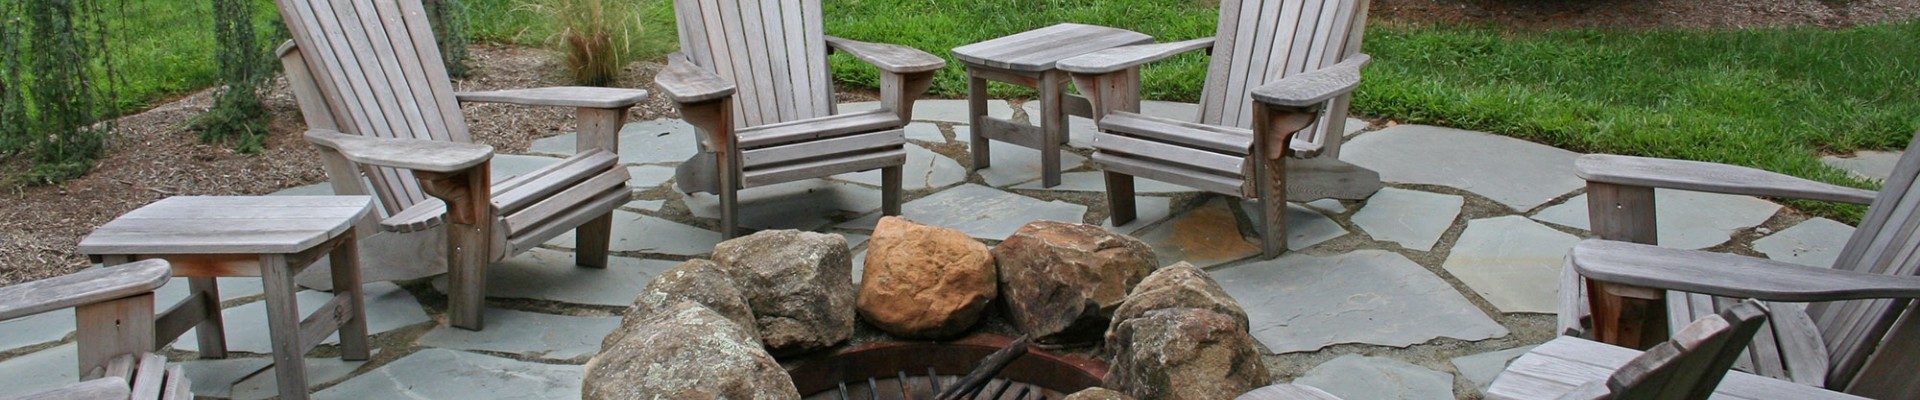 Find a Local Landscaping Company in Berks County